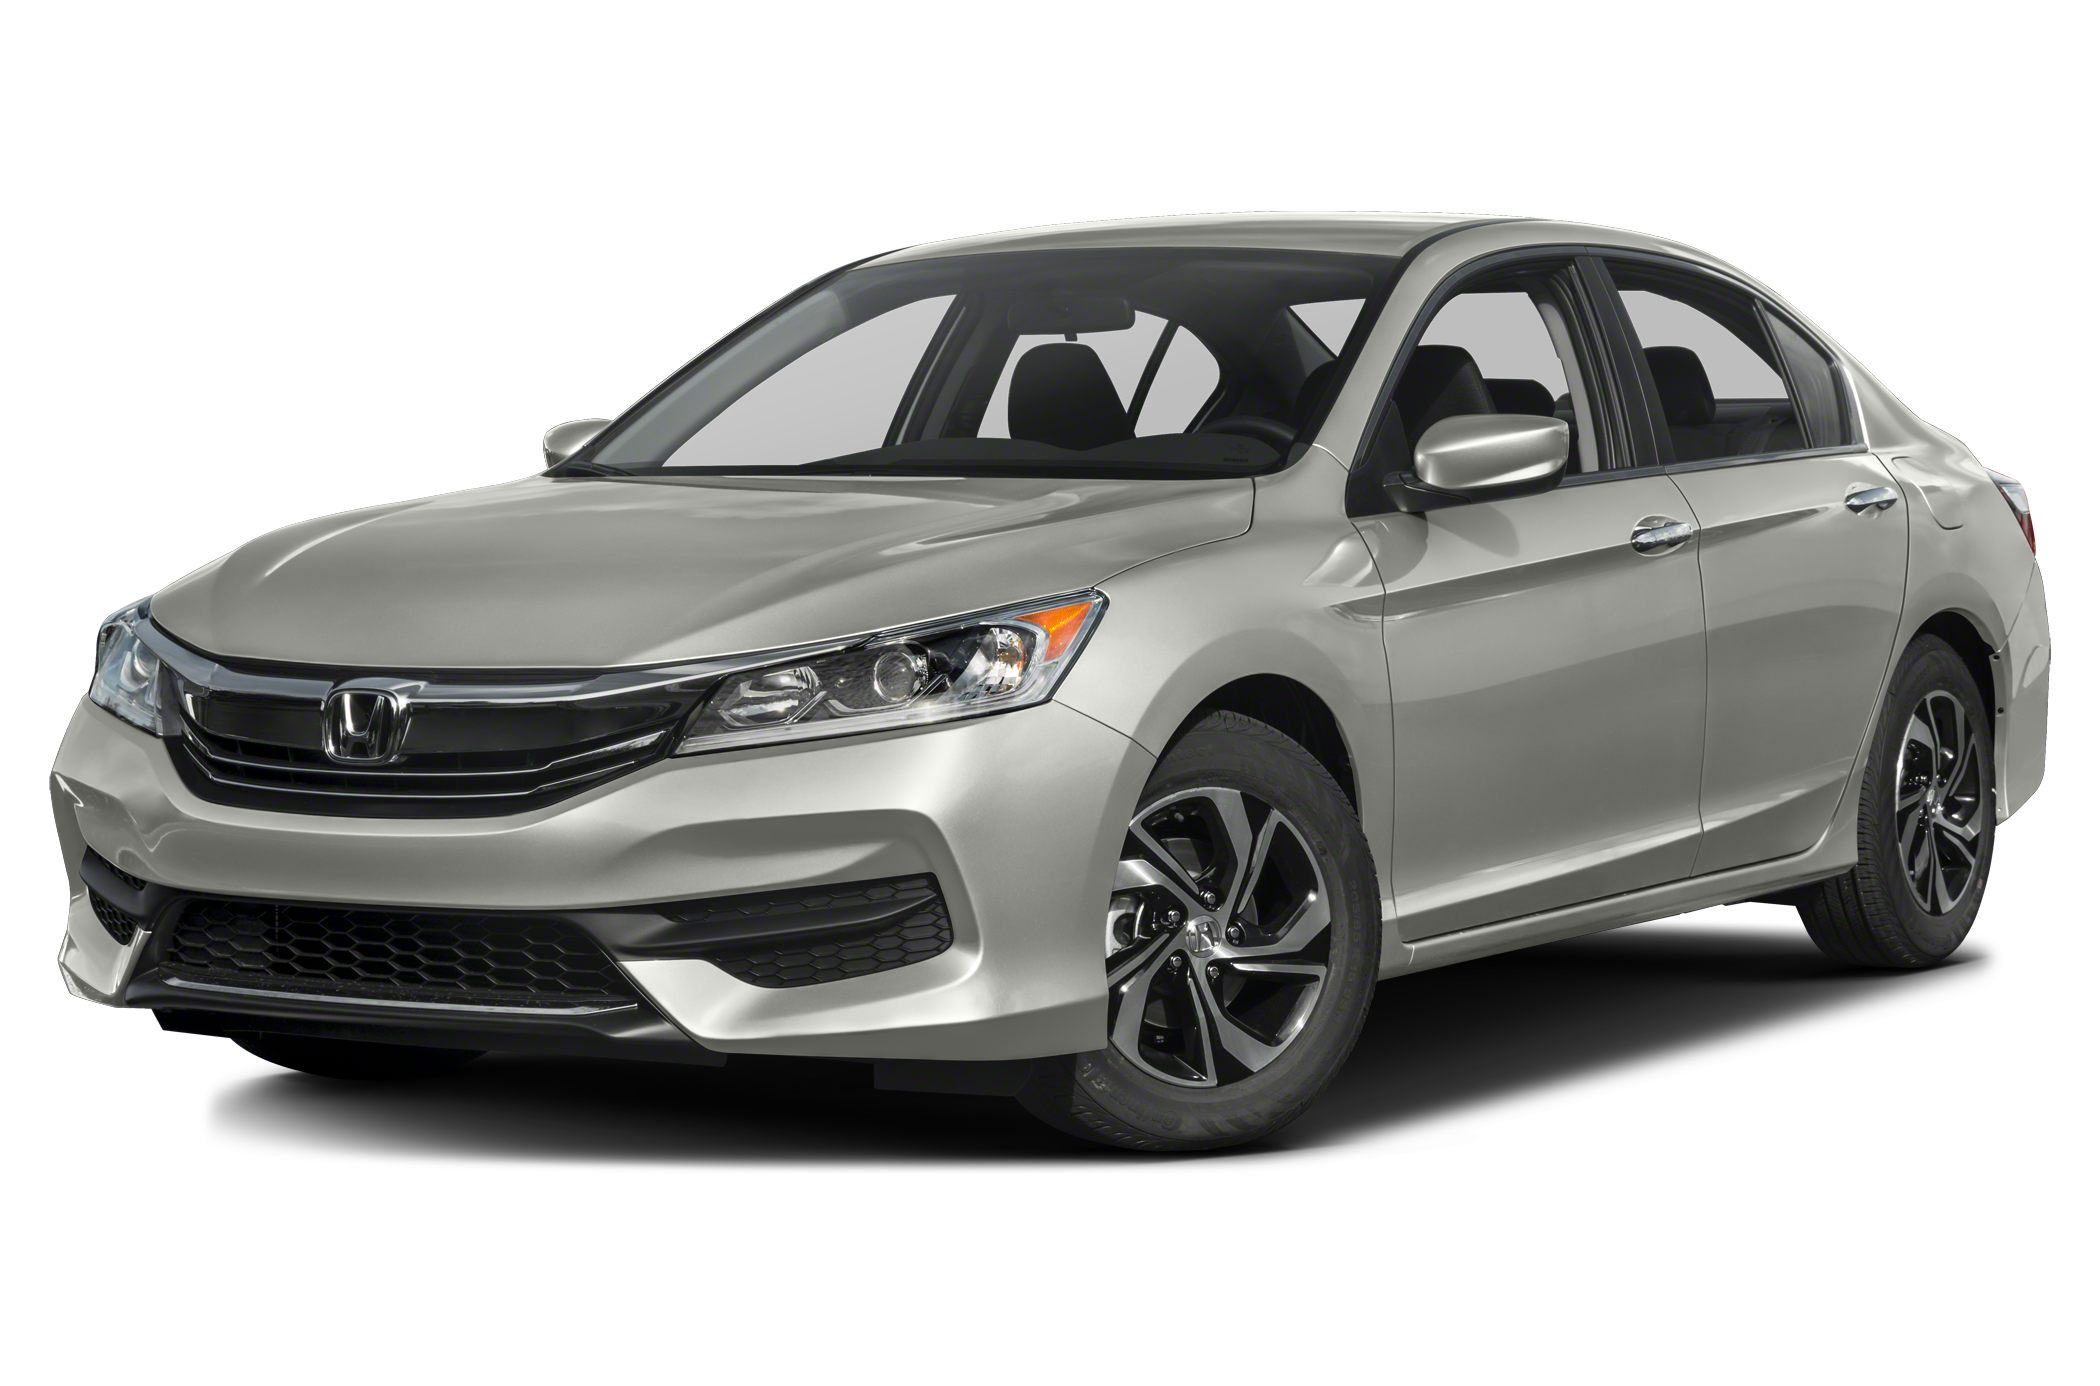 2016 Honda Accord LX You Win Yes Yes Yes Buy a new Honda from Diamond Valley Honda in Hemet an